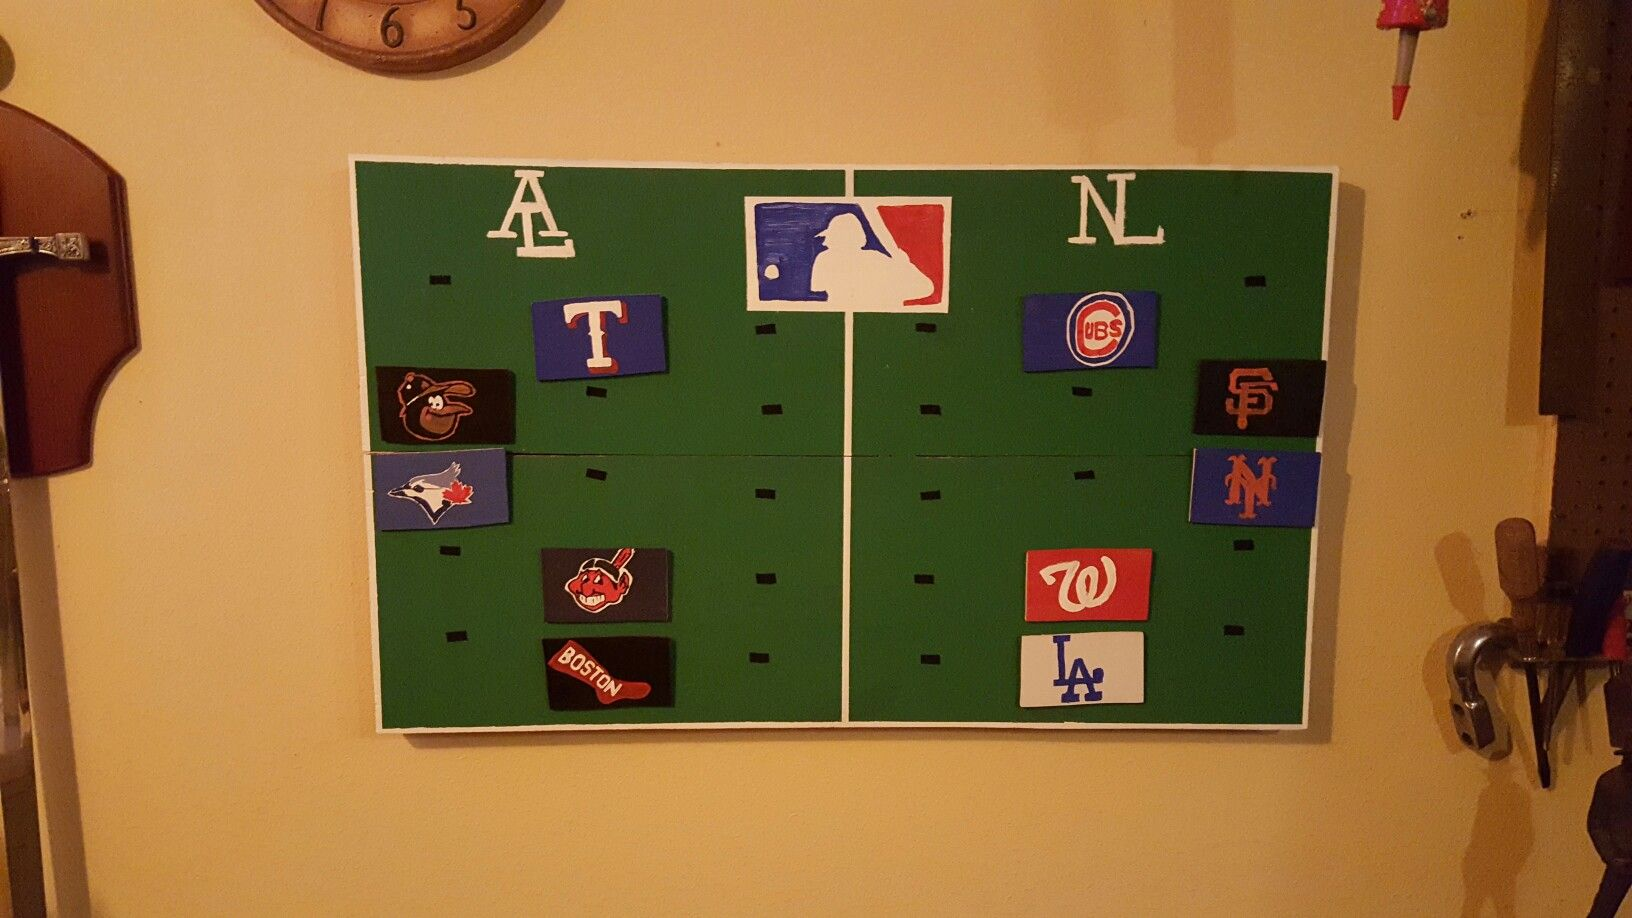 Mancave Mlb Standings Board Mancave Stuff In 2019 Man Cave Mlb